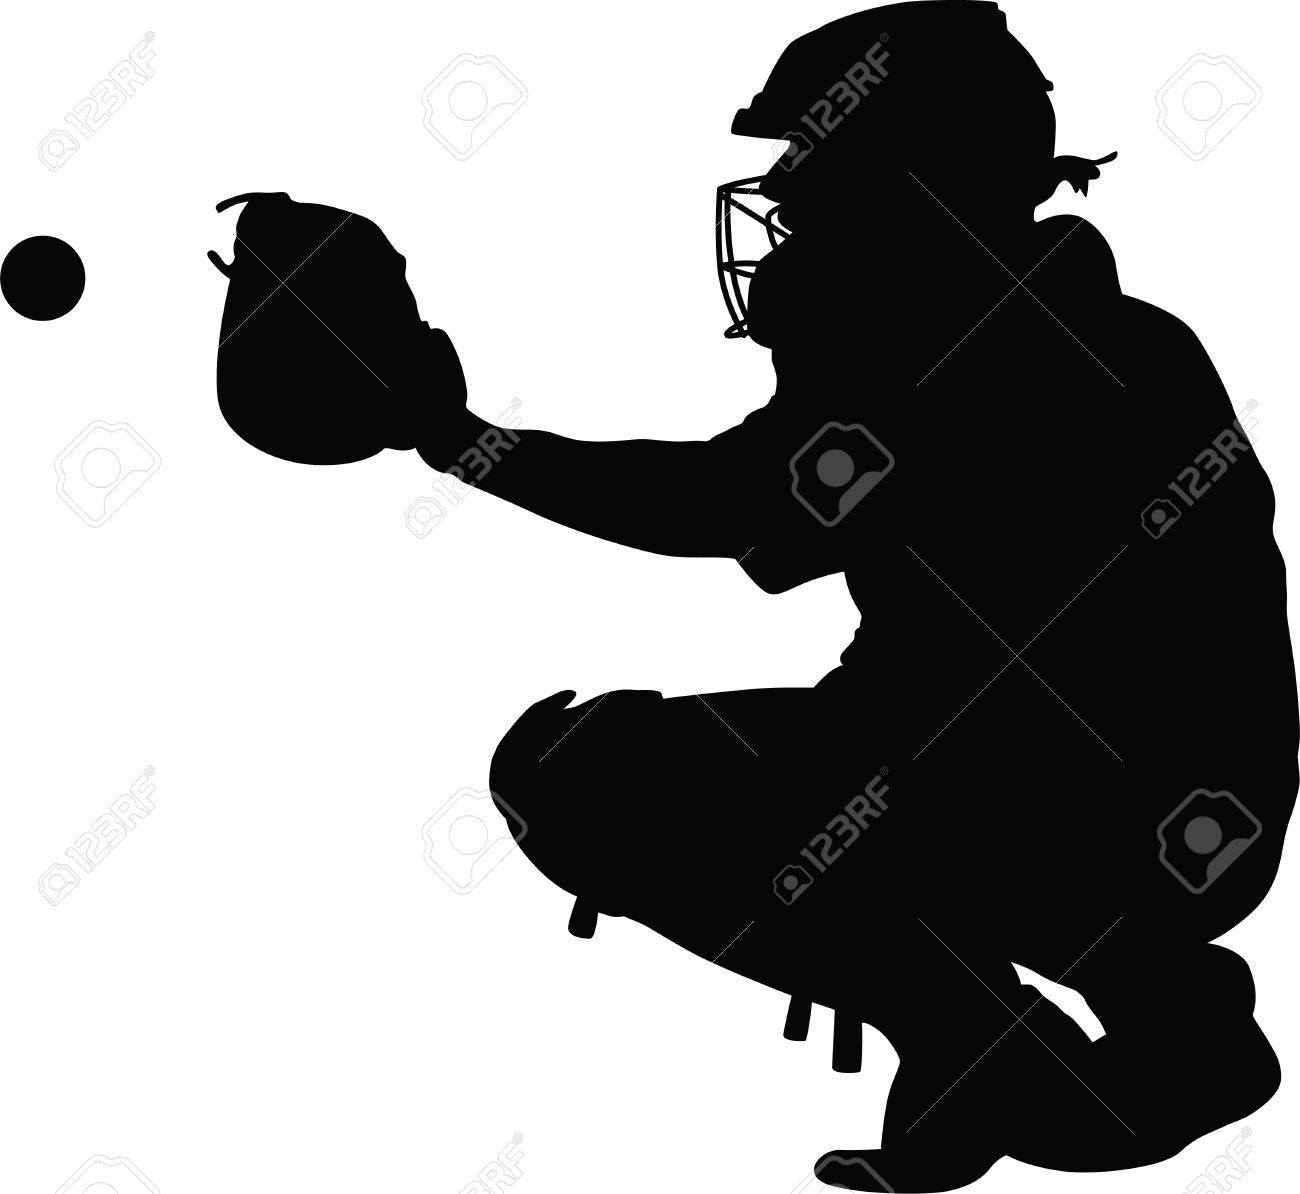 Baseball catcher clipart 4 » Clipart Station.